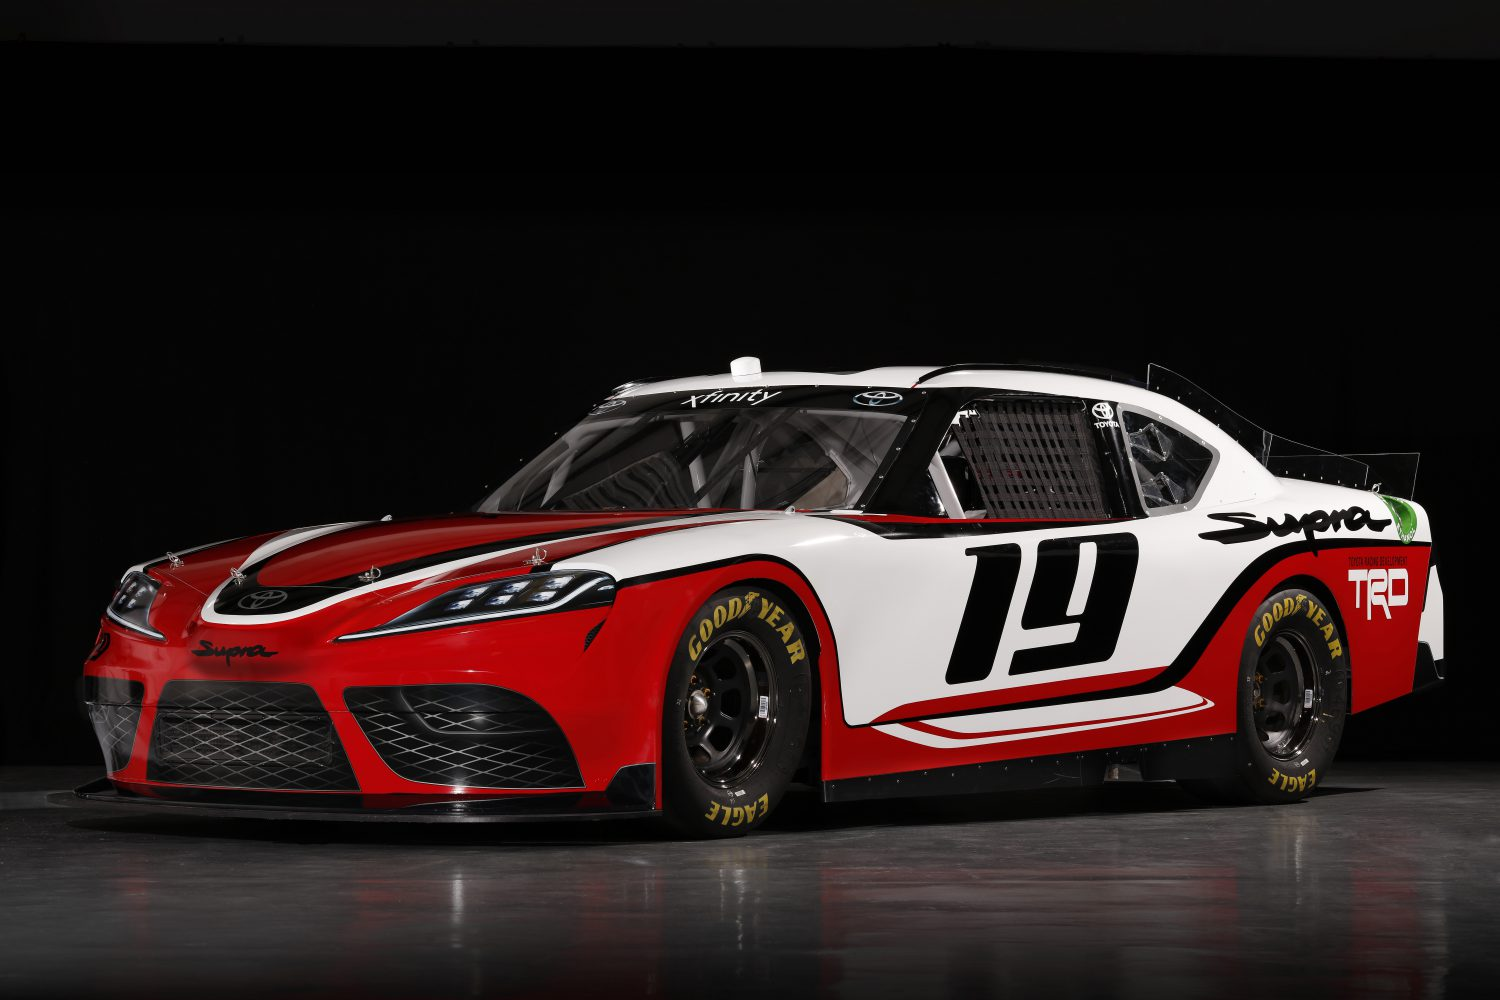 Vehicle Manufacturers In Nascar The Revival Of The Fittest Toyota Supra Gets Back To